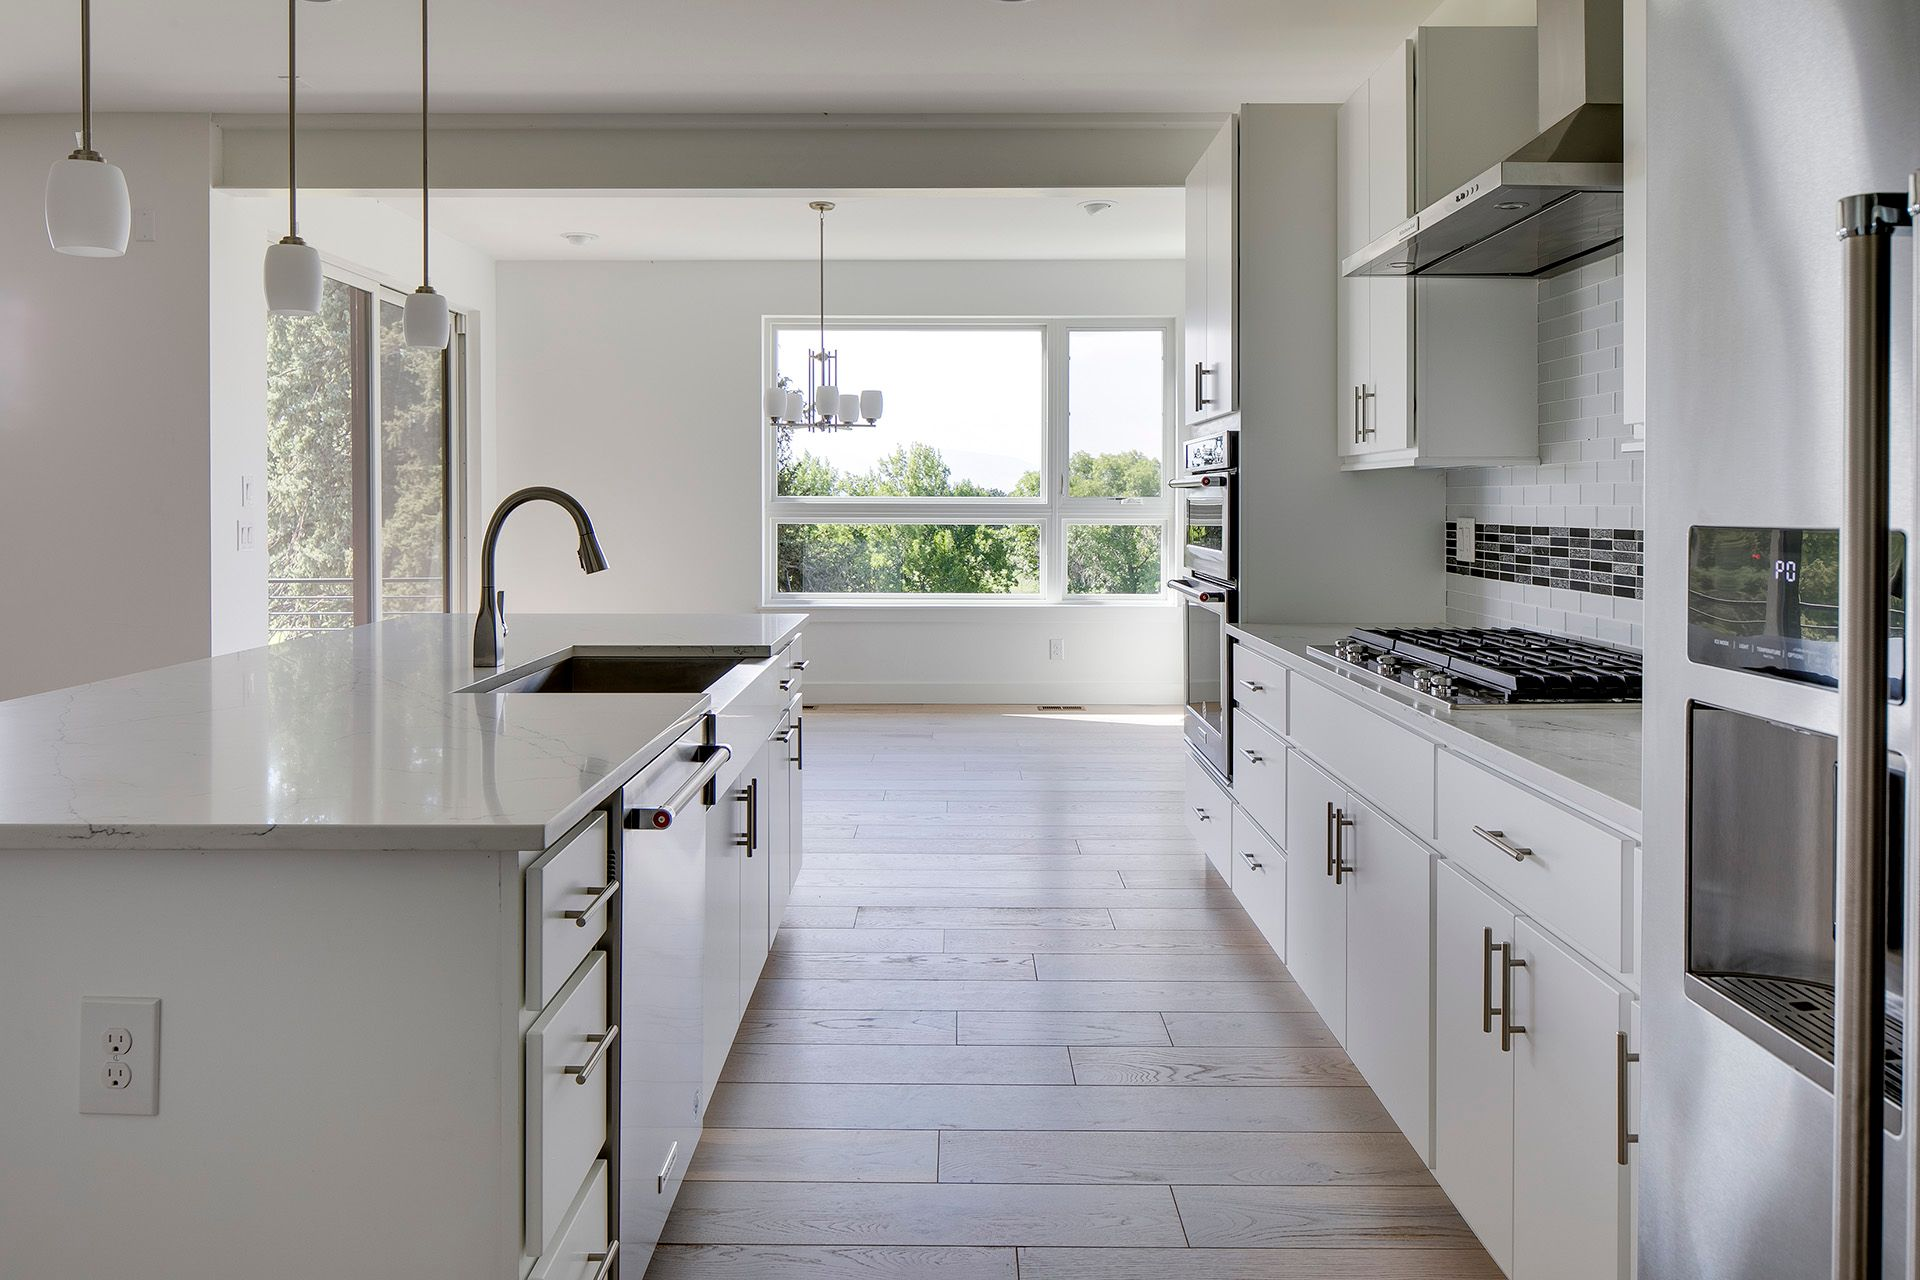 Kitchen featured in the Willis By Koelbel Urban Homes in Denver, CO